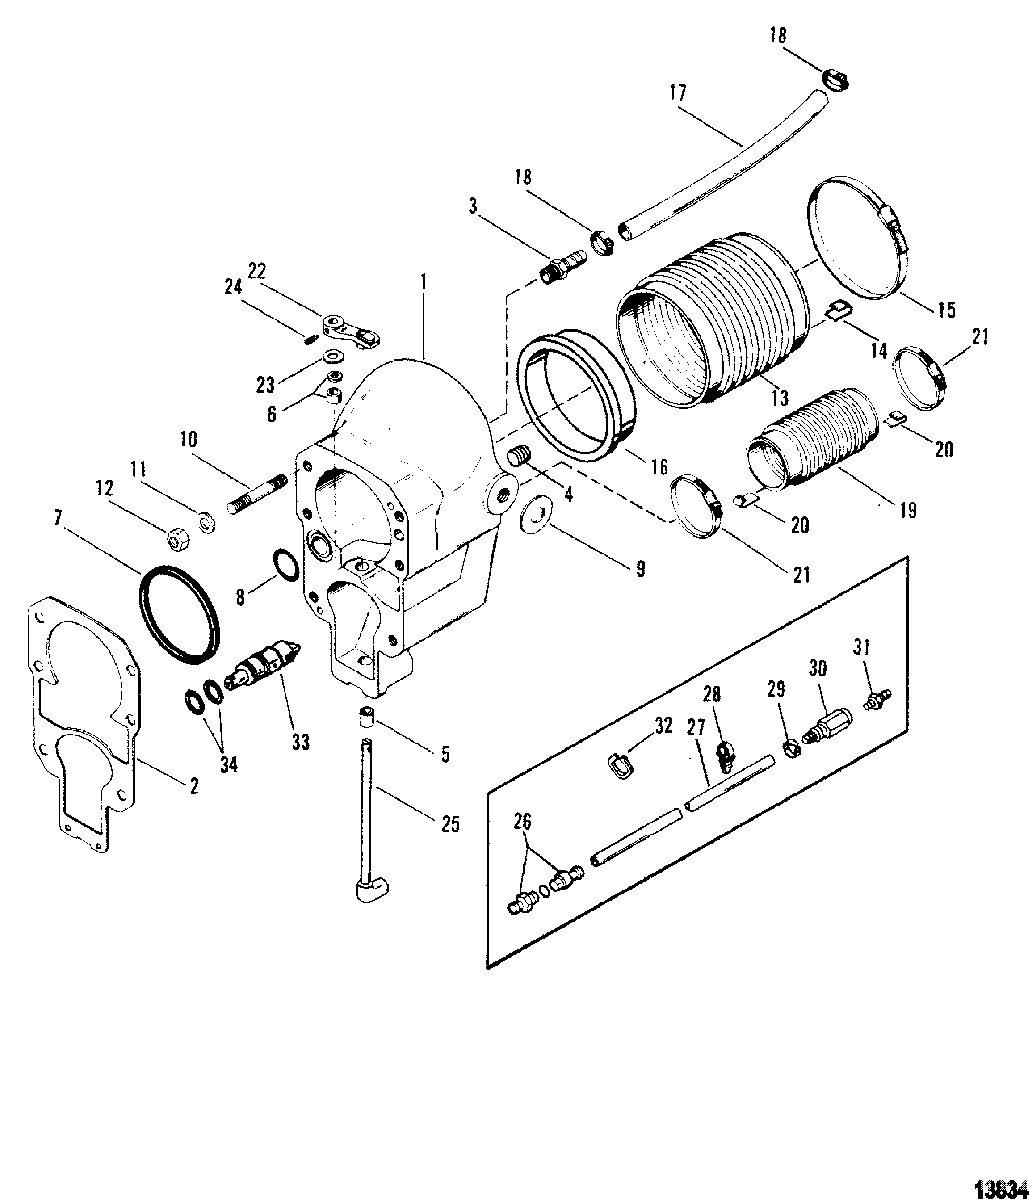 Mercruiser : Alpha One Gen Ii Sterndrive And Transom Assembly for Mercruiser Alpha 1 Gen 2 Parts Diagram